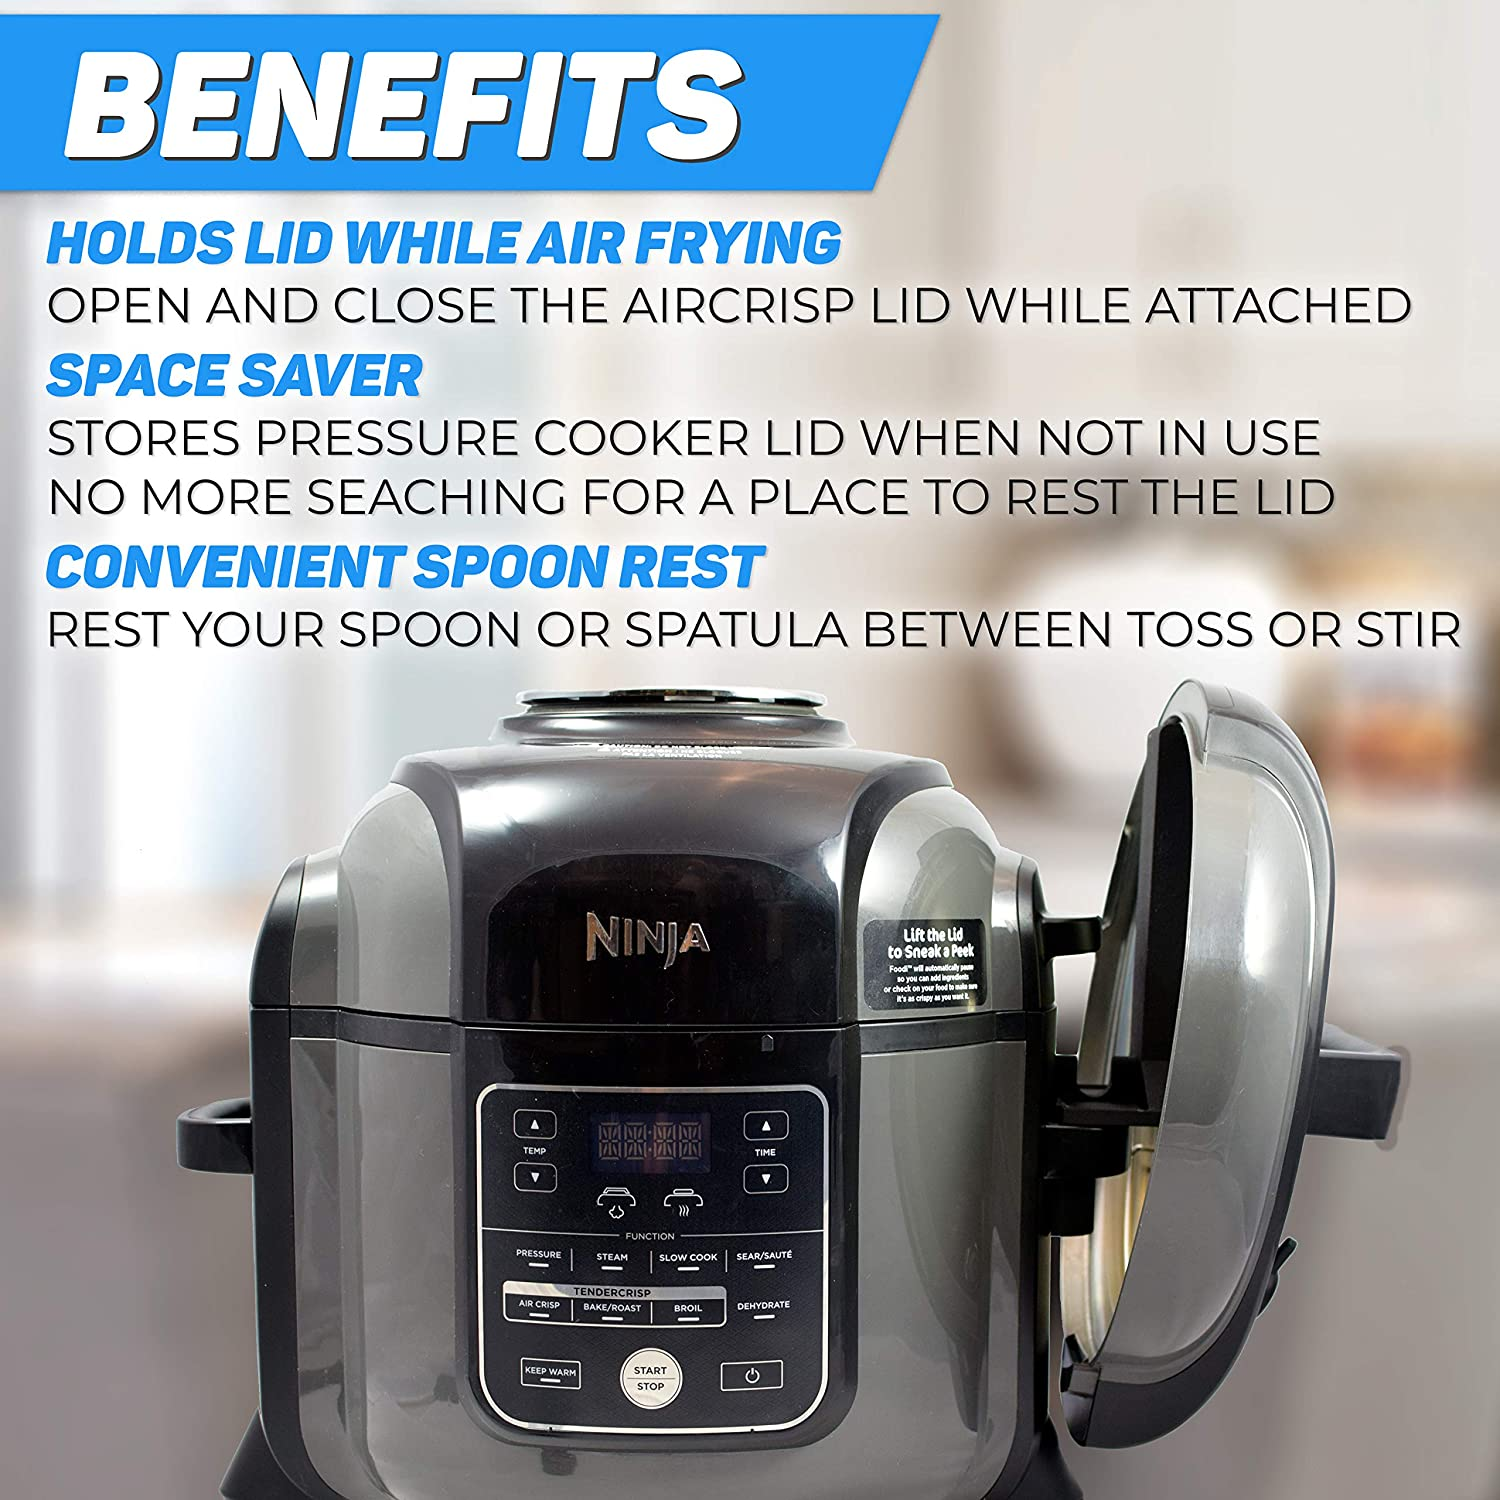 The Steam Boss - Lid and Spoon Rest | Accessories Compatible with Ninja Foodi Pressure Cooker Air Fryer | Fits Ninja Foodi 6.5, XL 8 quart (Does Not ...